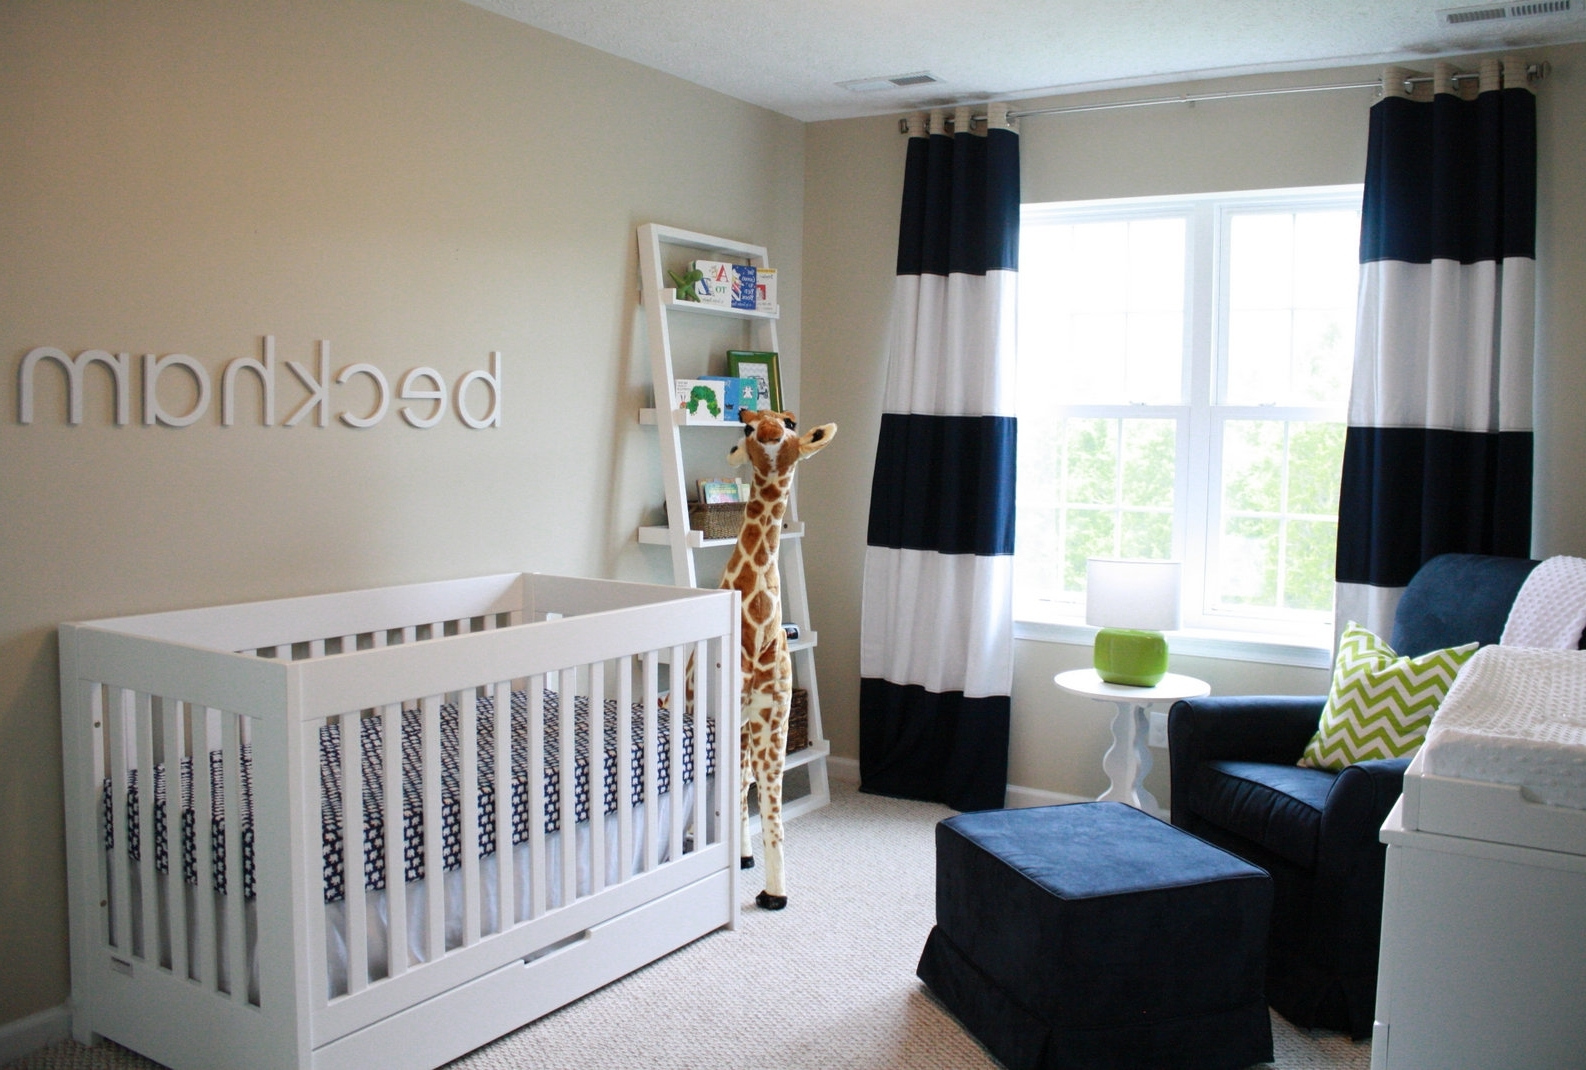 Gorgeous interior design ideas for baby rooms mojidelano com for Nursery theme ideas